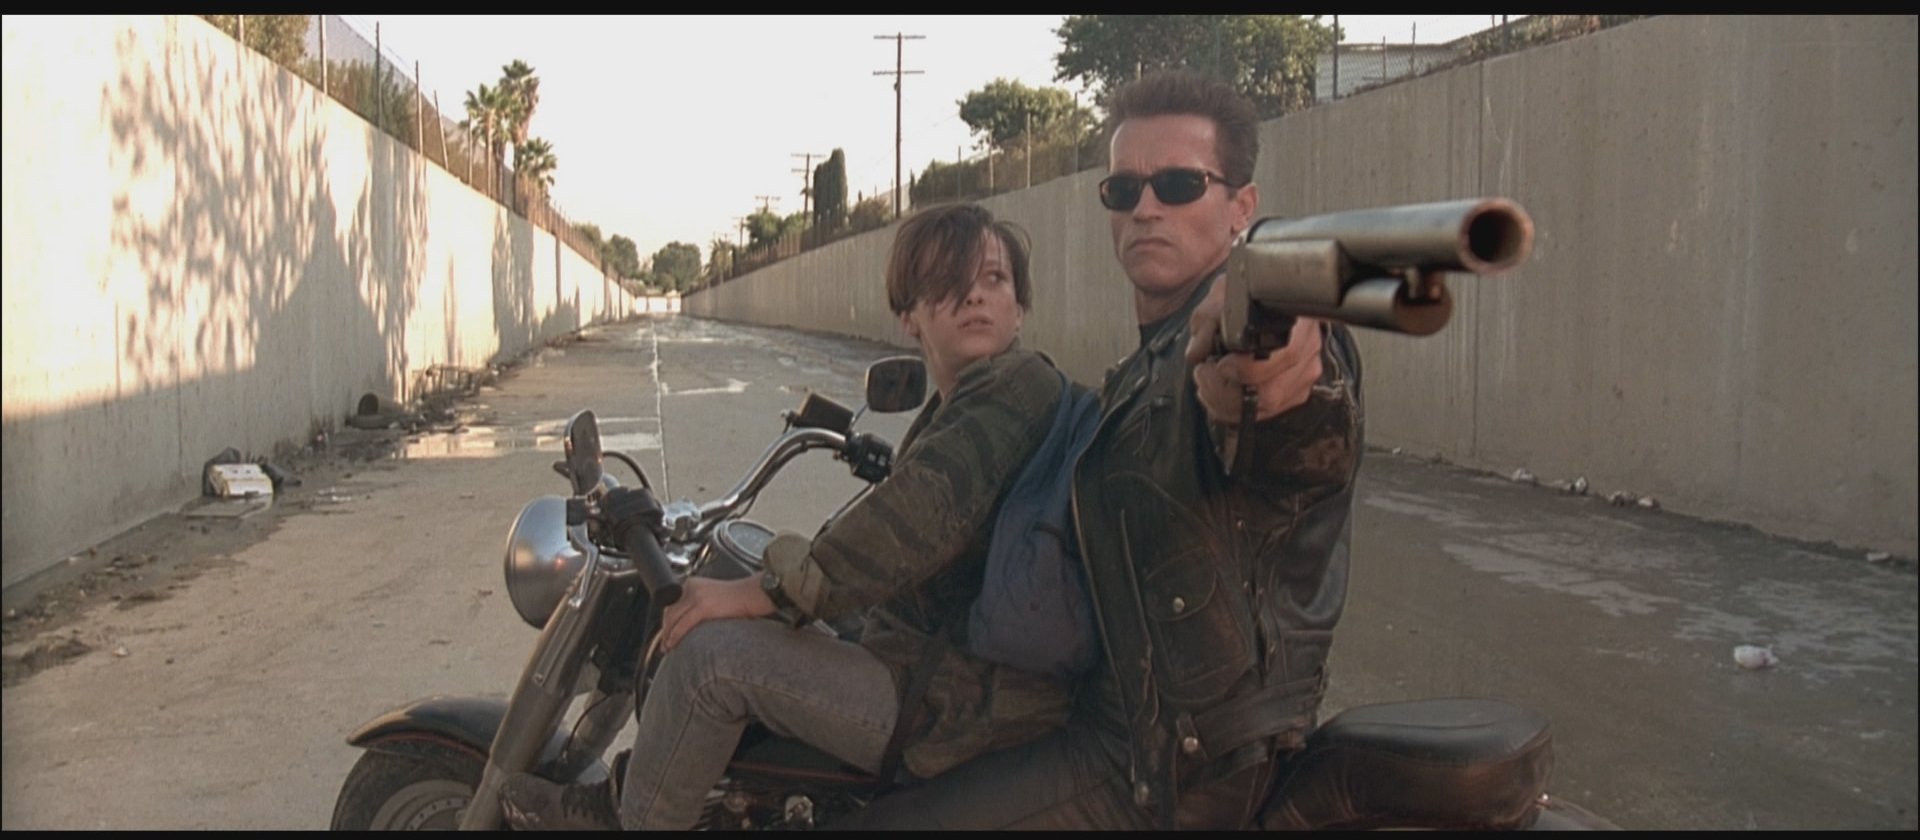 THE TERMINATOR IS SENT TO SAVE JOHN CONNOR